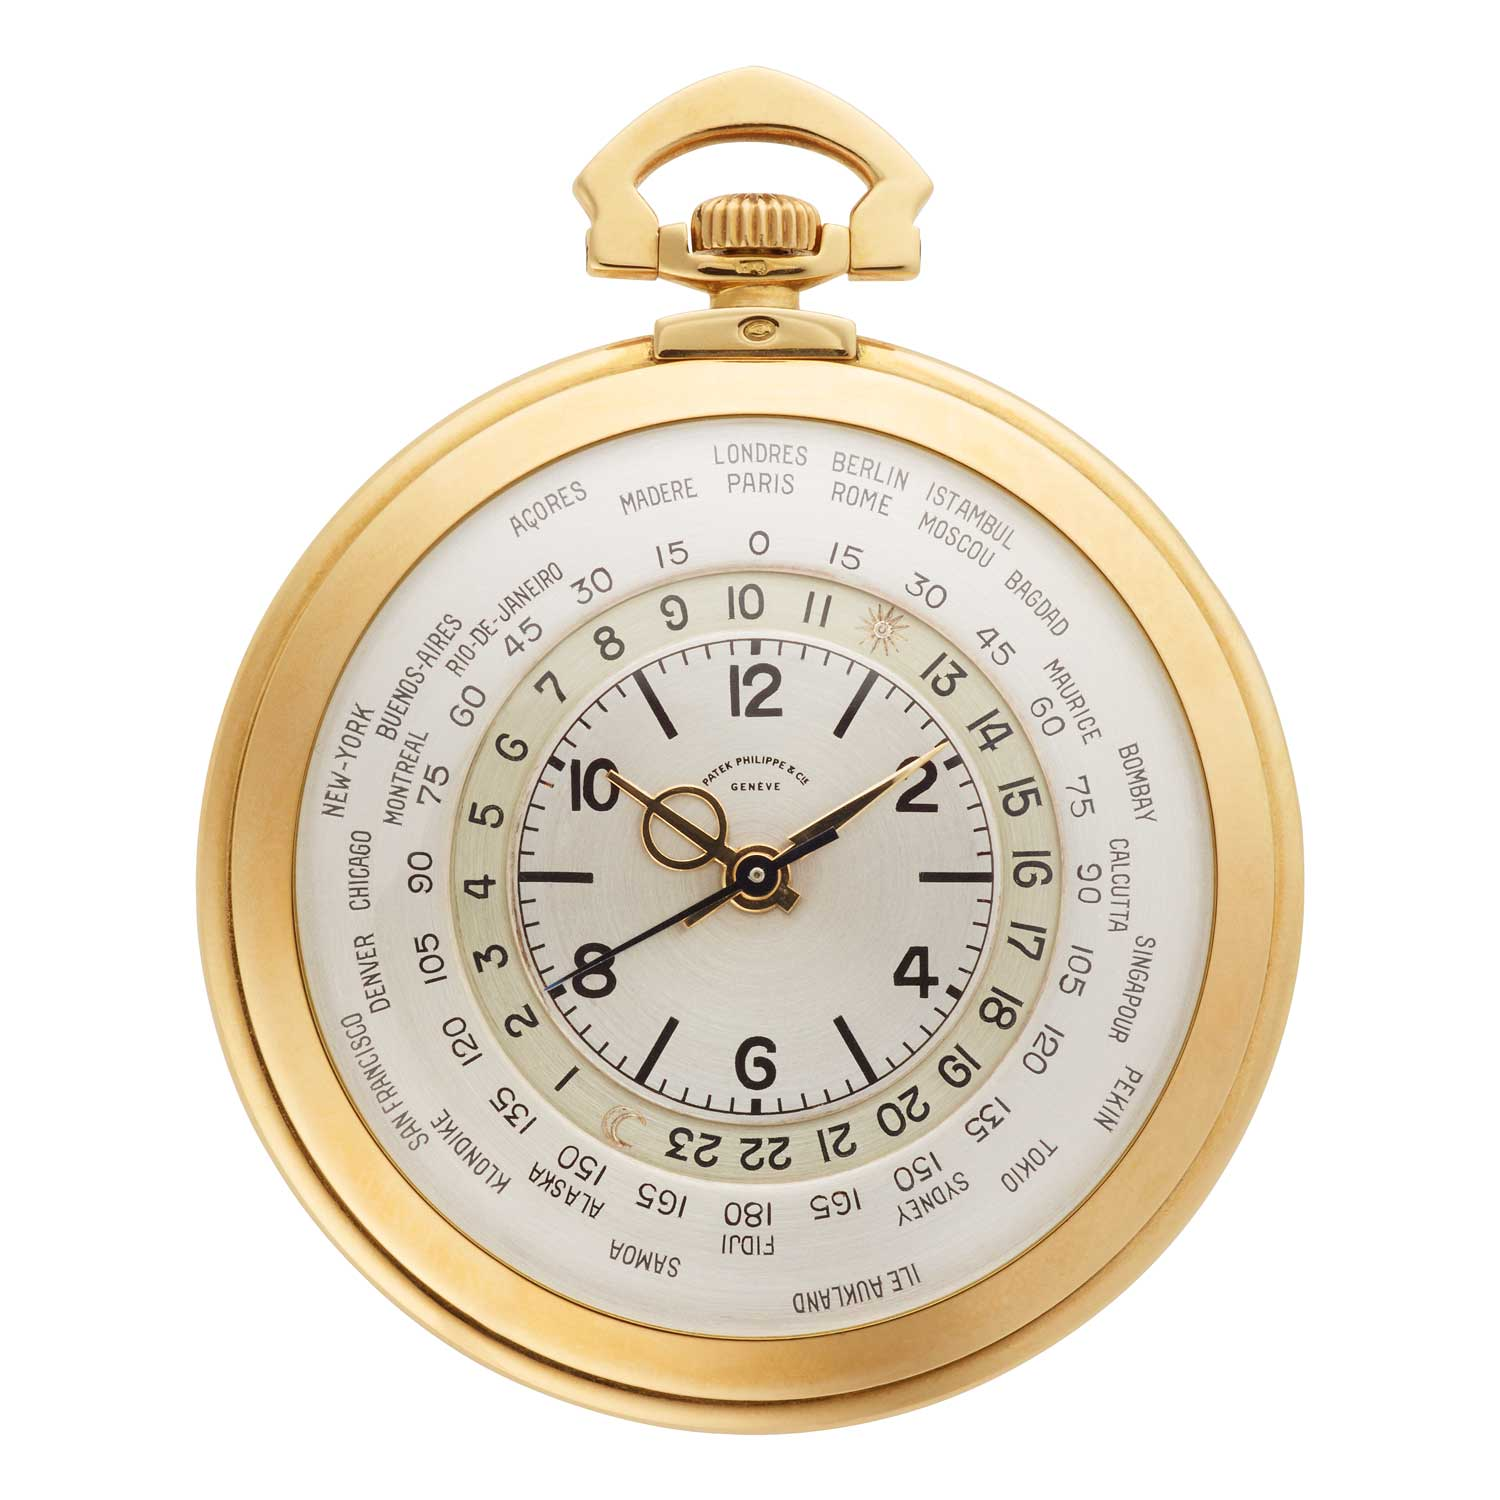 The reference 605 HU was a demonstration of the successful collaborative effort between Patek Philippe and Louis Cottier.